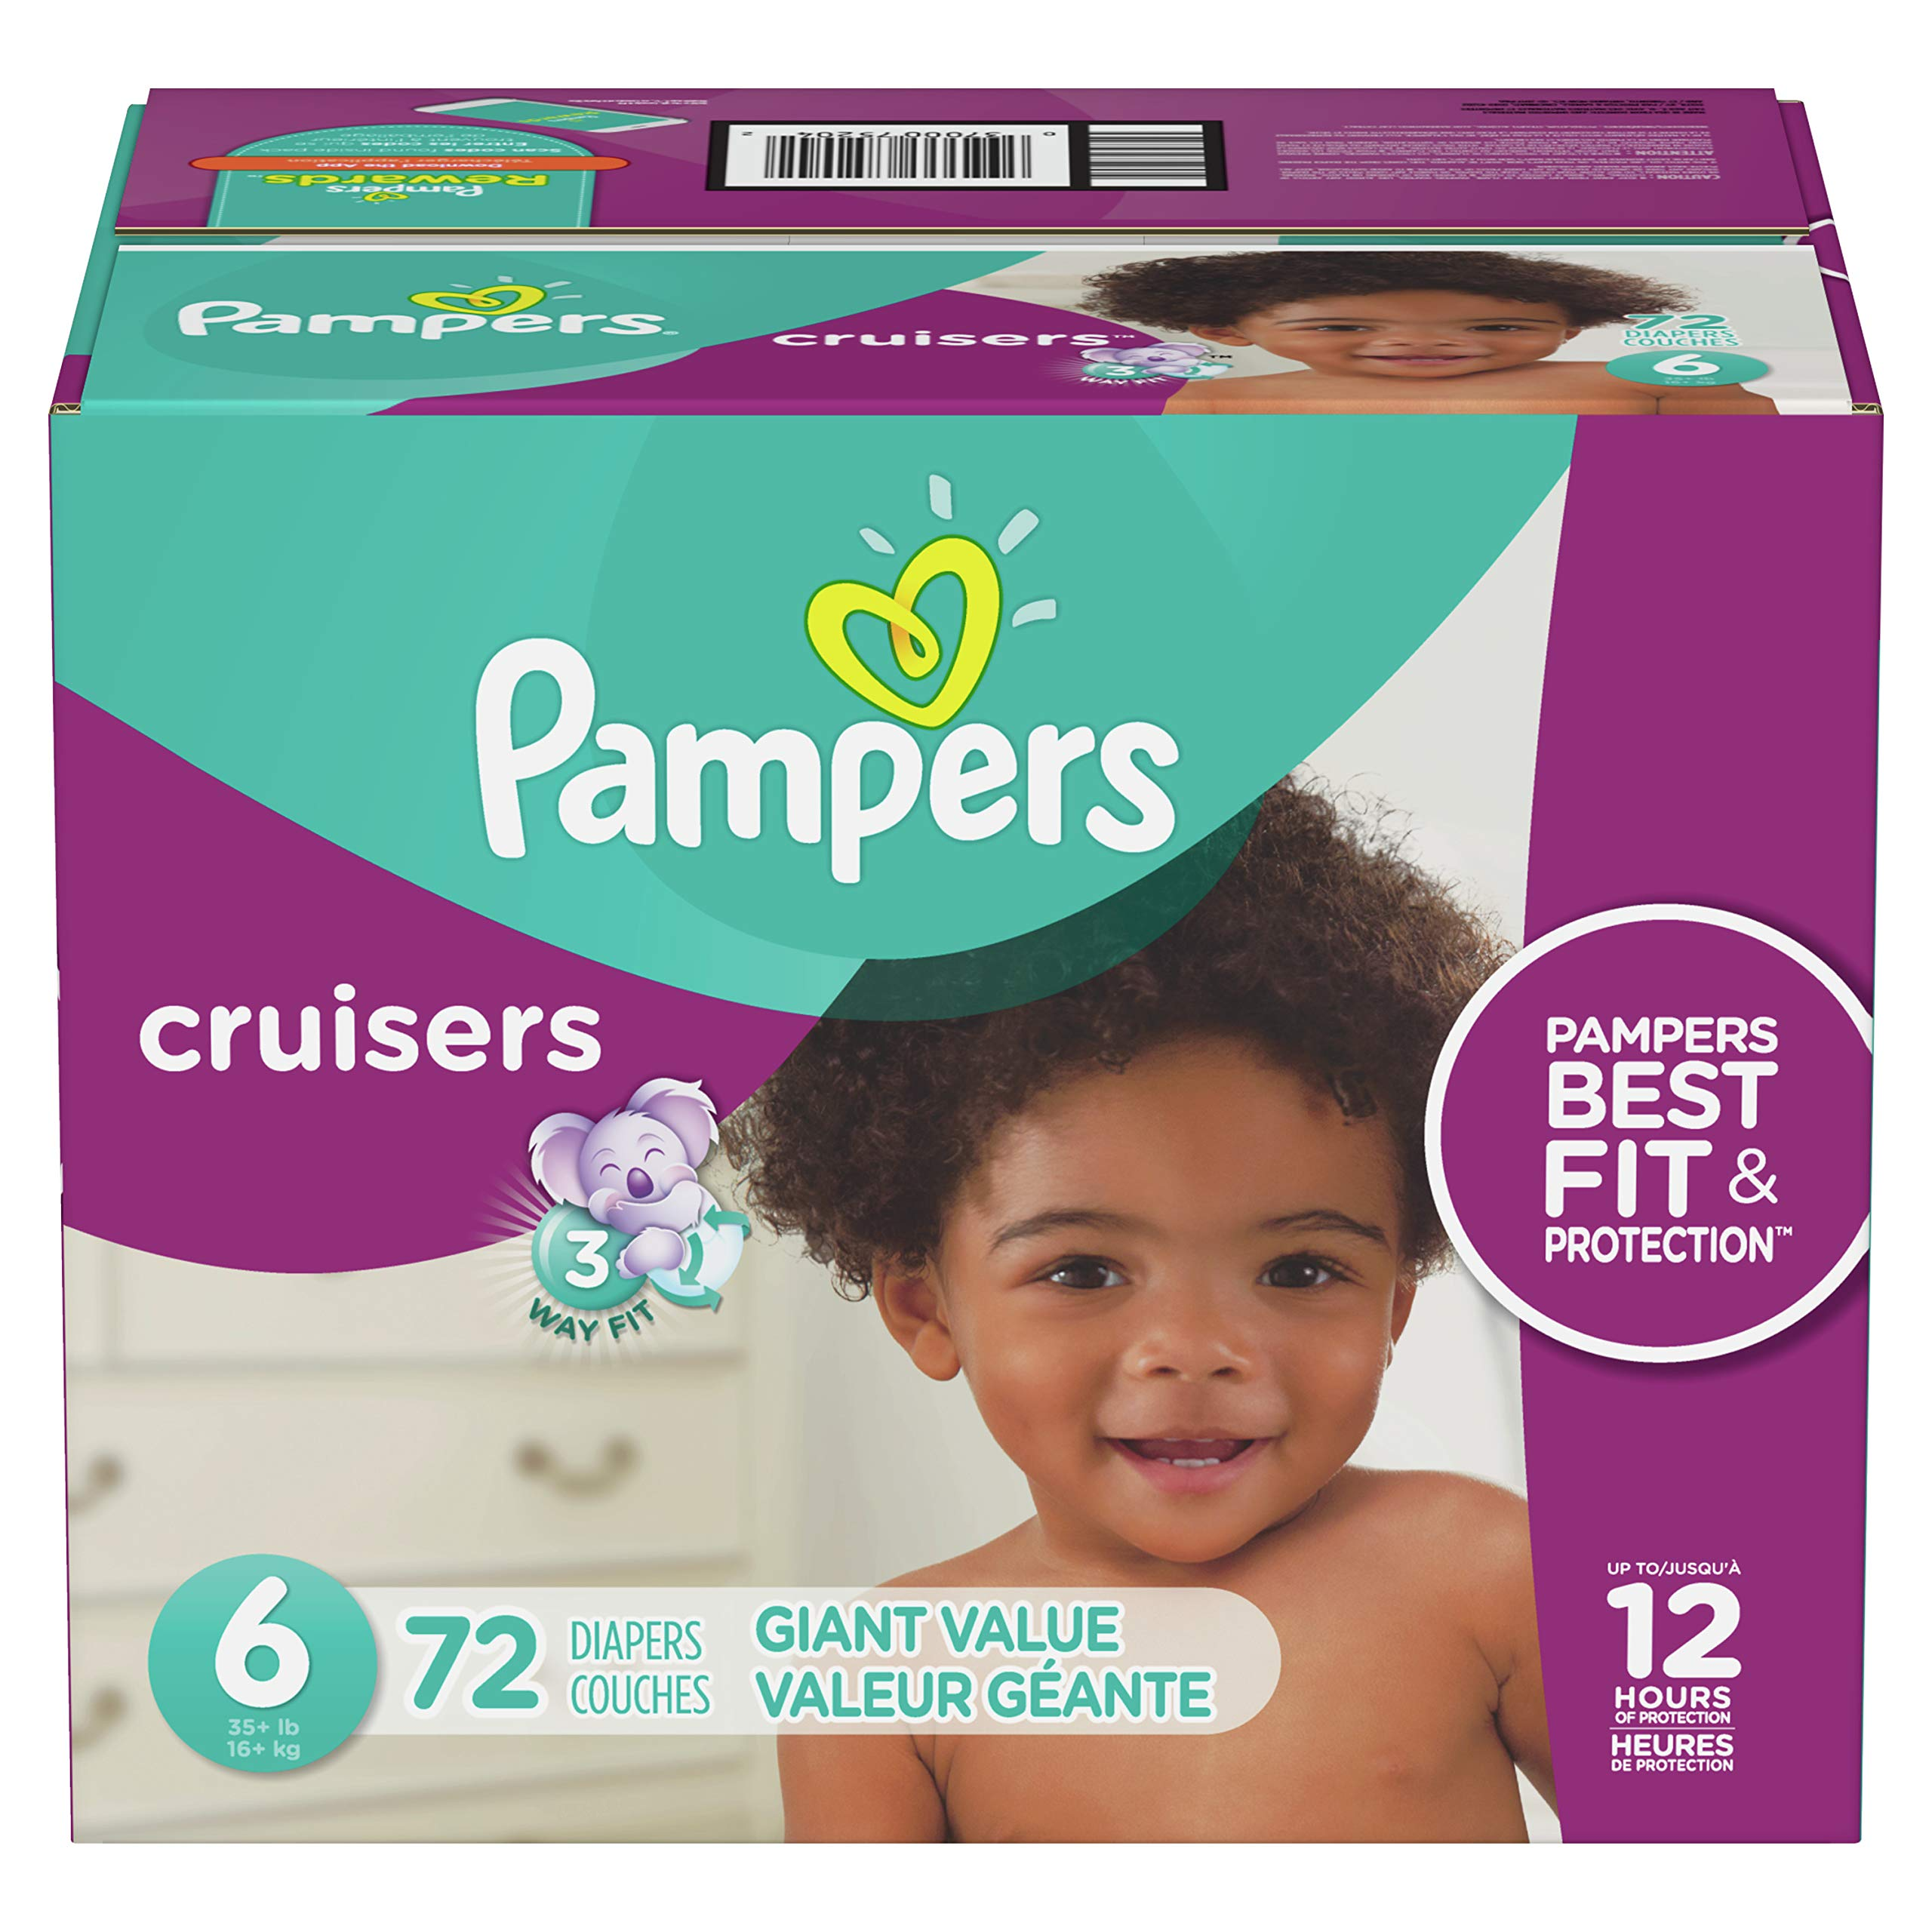 Diapers Size 6, 72 Count - Pampers Cruisers Disposable Baby Diapers, Giant Pack (Packaging May Vary) by Pampers